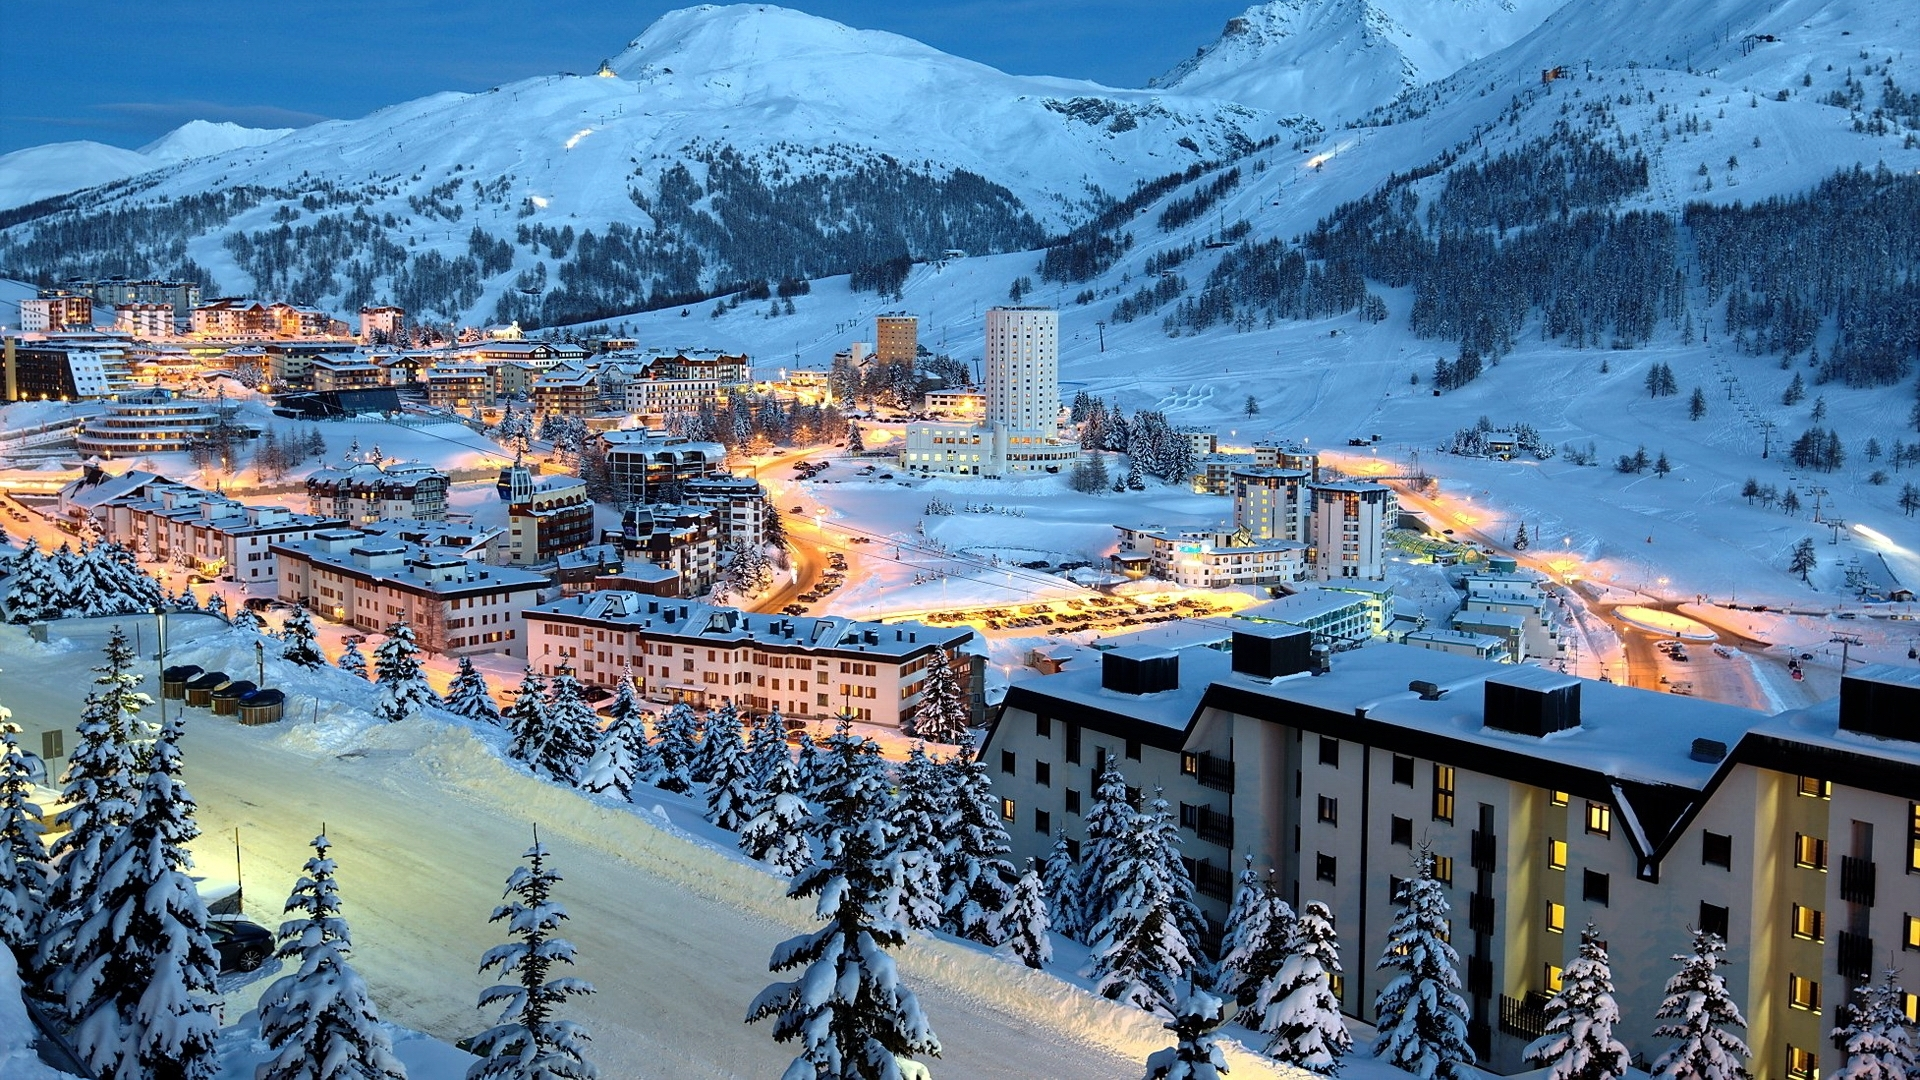 45309 download wallpaper Landscape, Cities, Winter, Snow screensavers and pictures for free